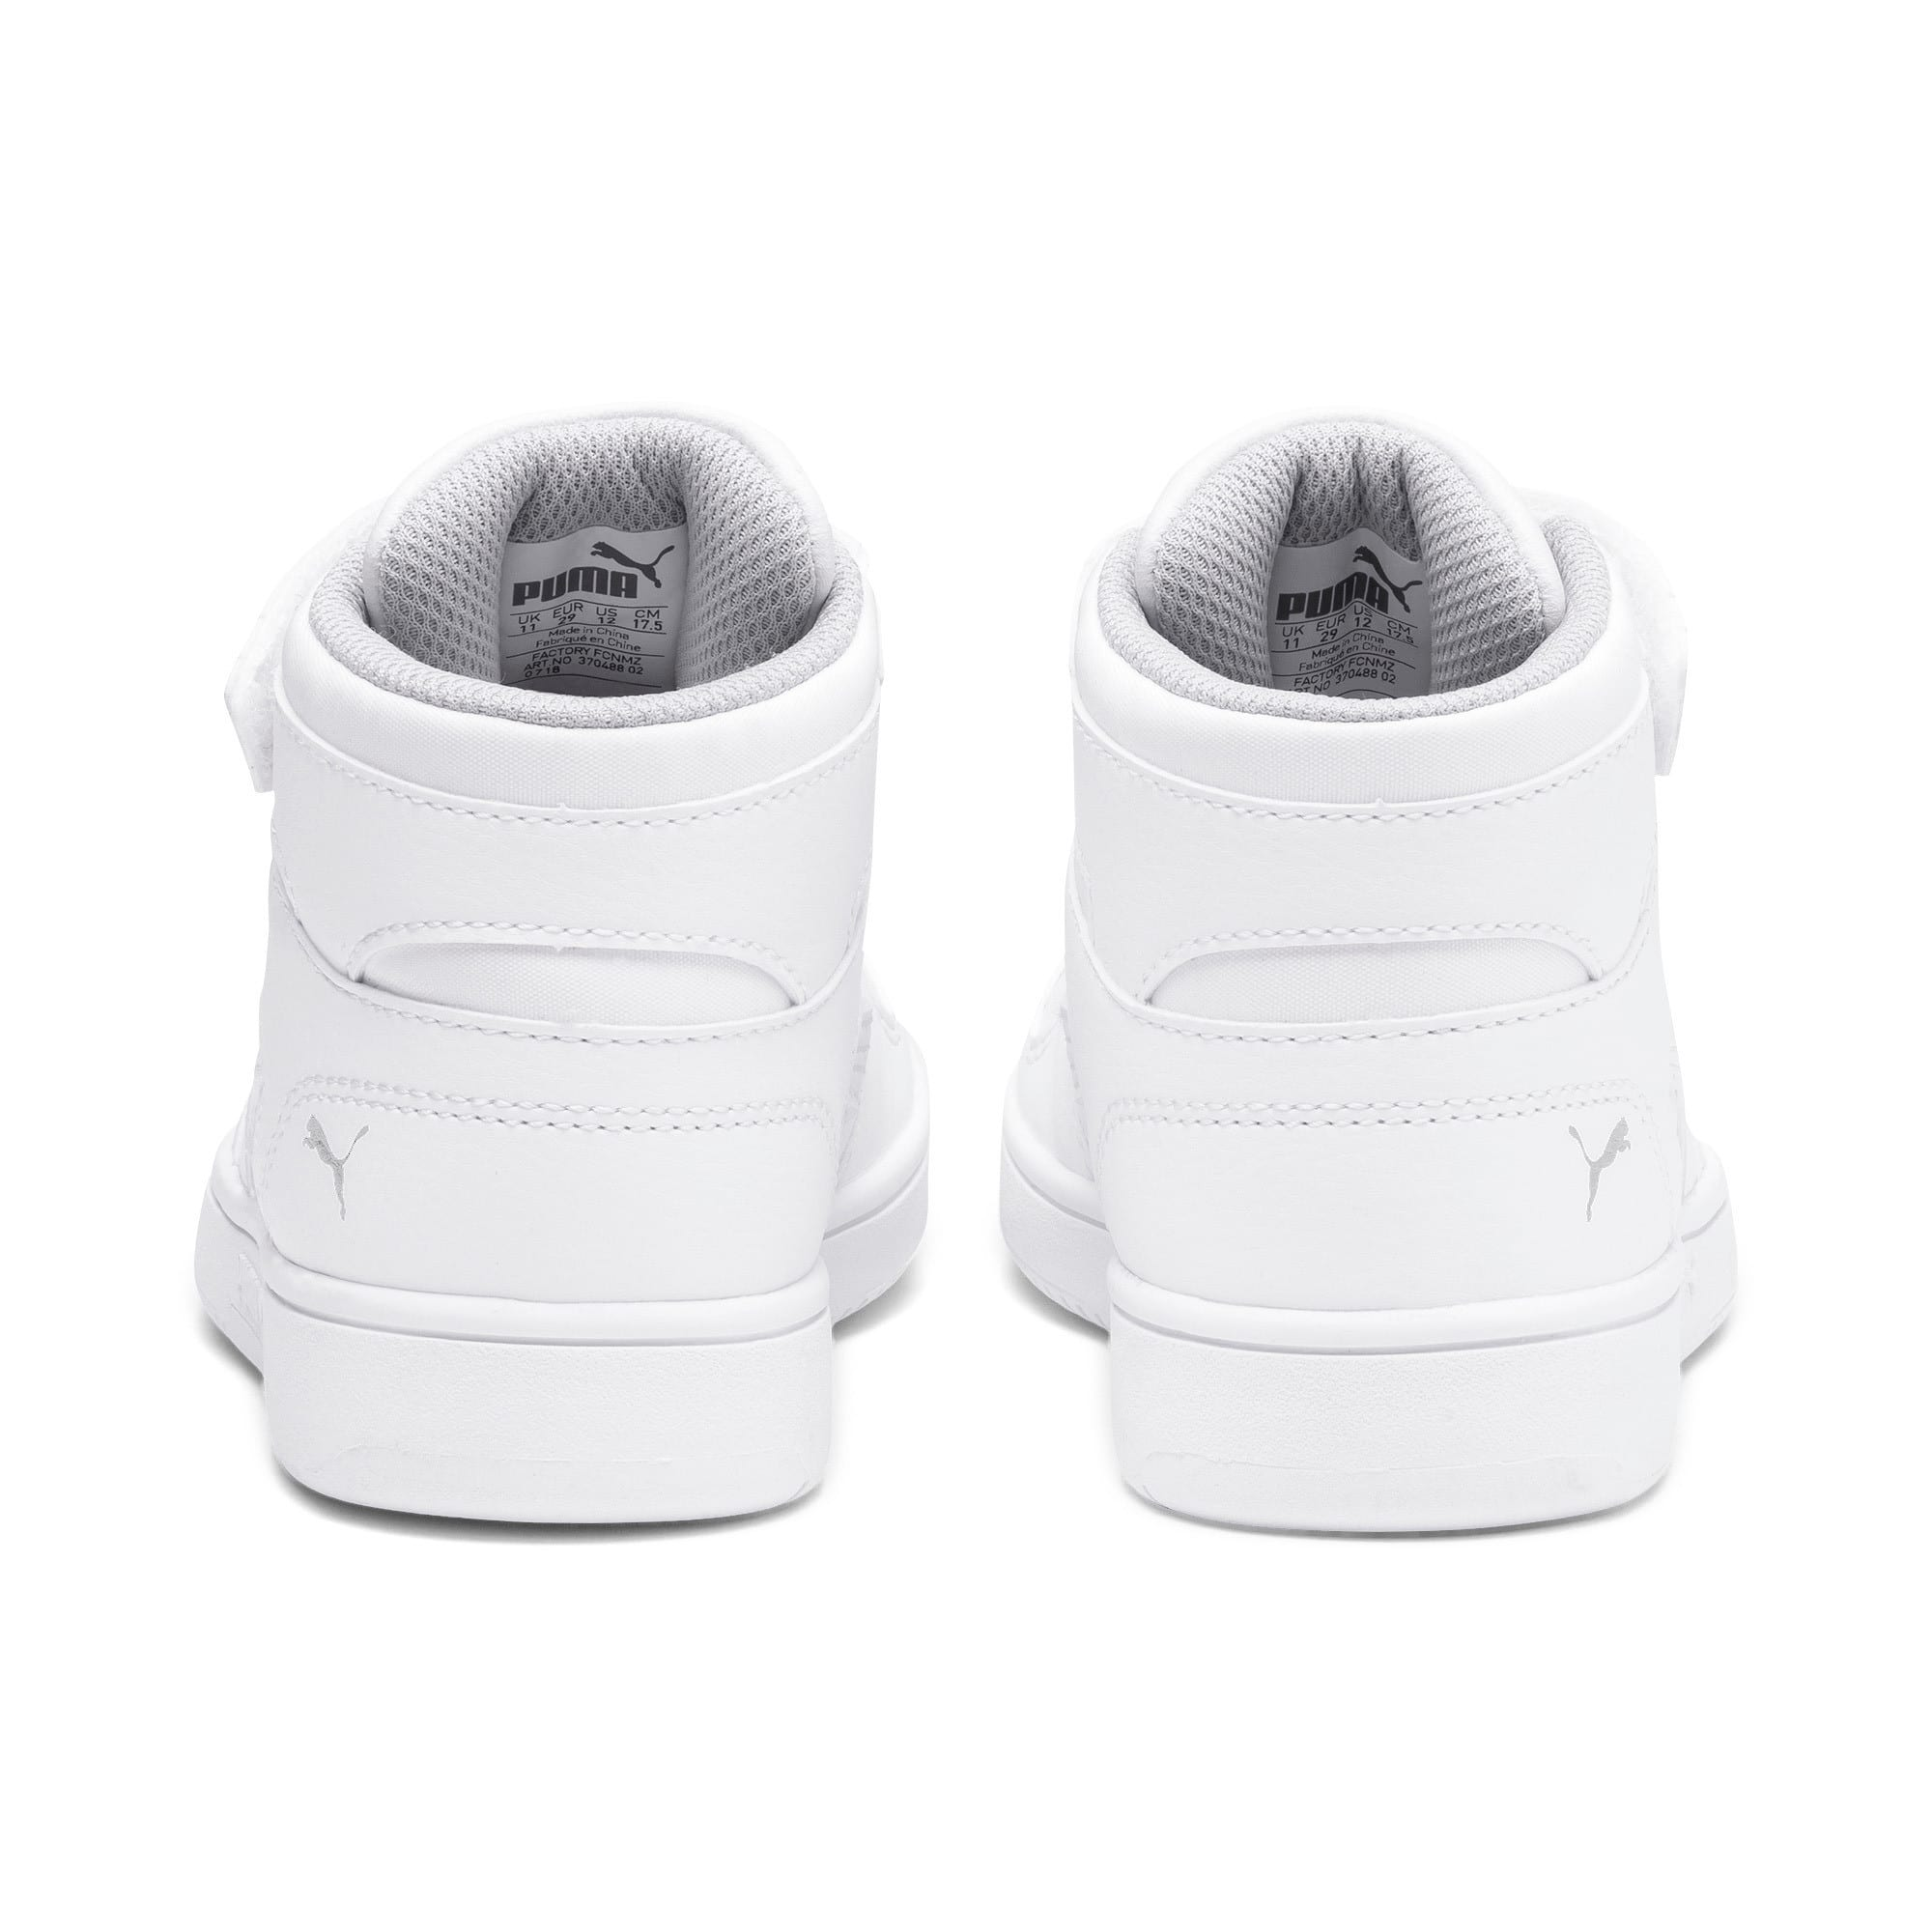 Thumbnail 3 of Rebound Lay-Up SL V Kids' Trainers, Puma White-Gray Violet, medium